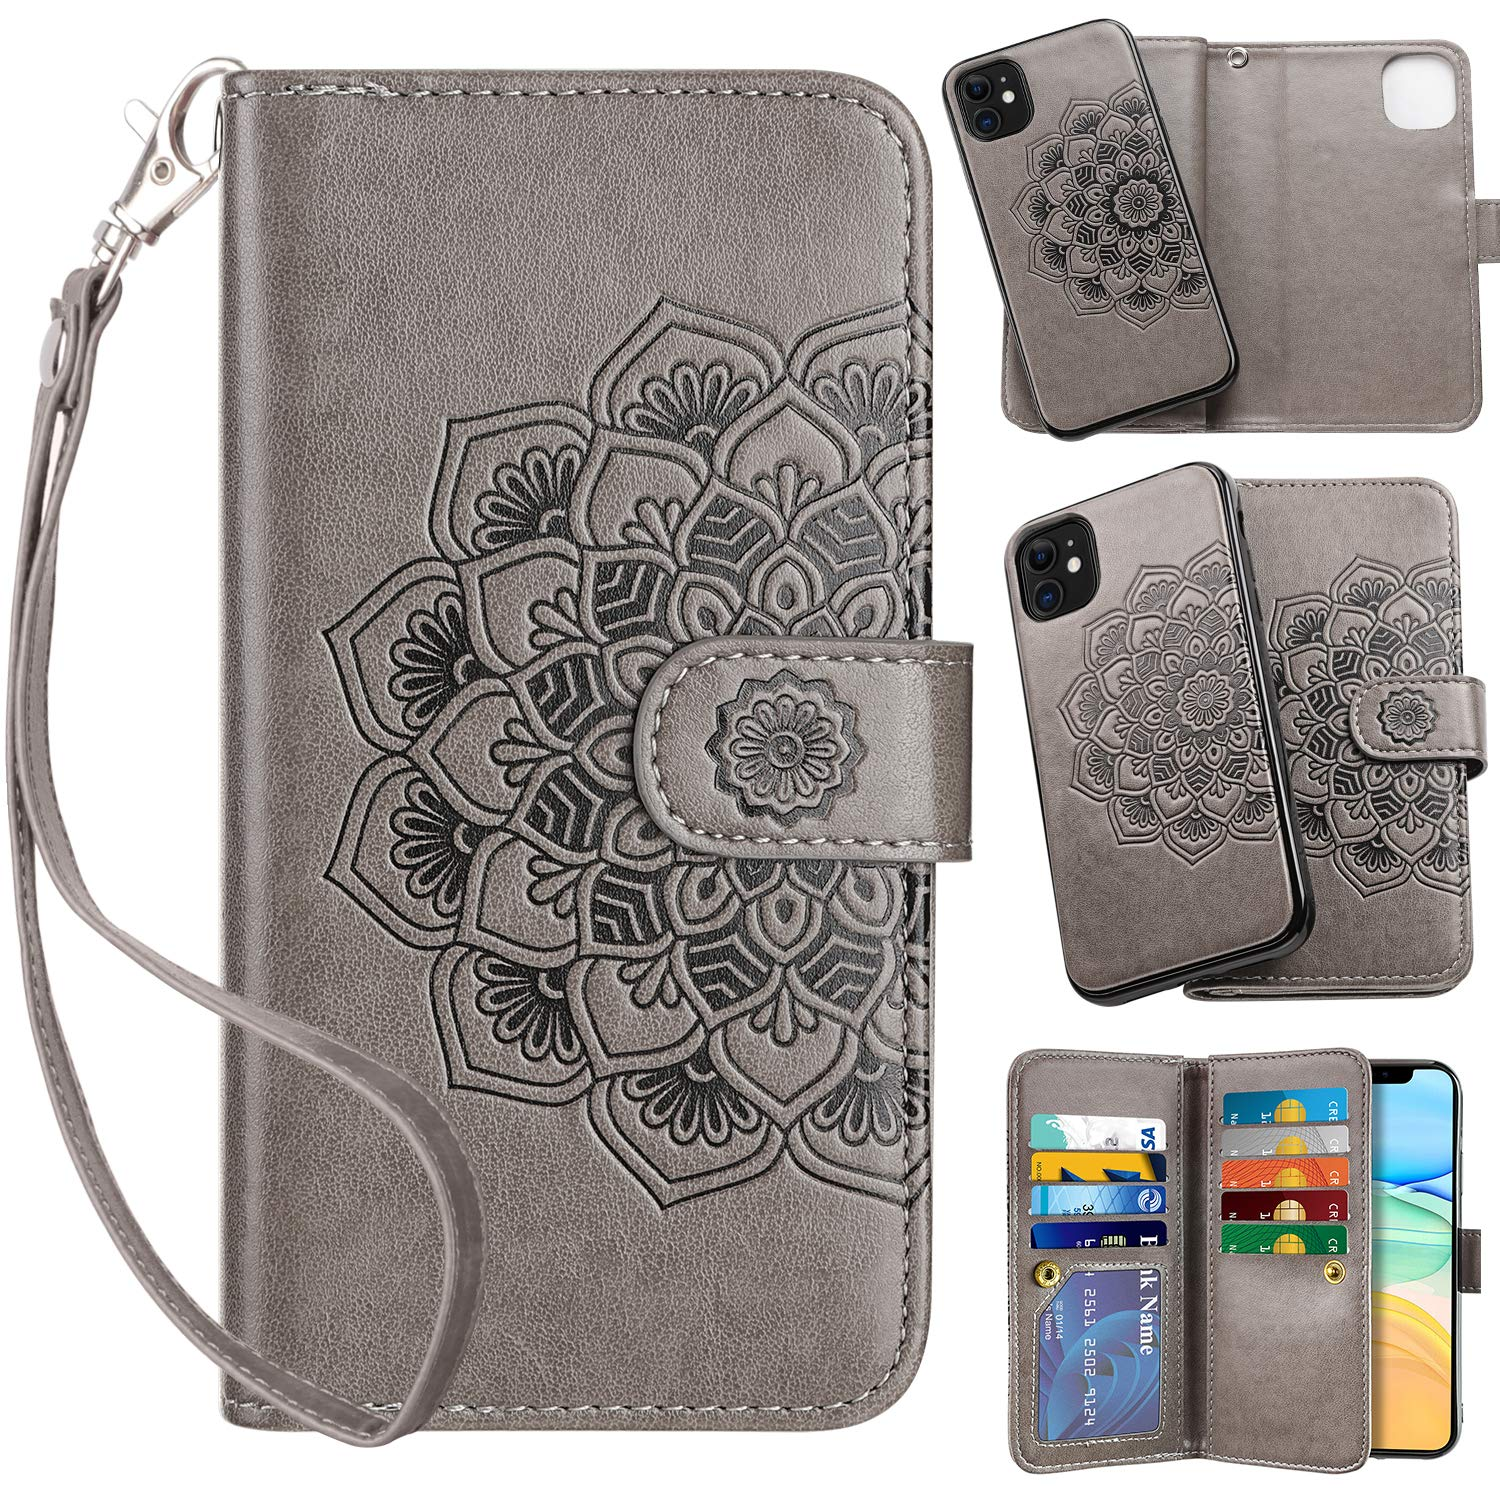 Vofolen 2-in-1 Case for iPhone 11 Case Wallet Credit Card Holder ID Slot Detachable Hybrid Protective Slim Hard Shell Magnetic PU Leather Folio Pocket Flip Cover for iPhone 11 6.1 inch Mandala Grey